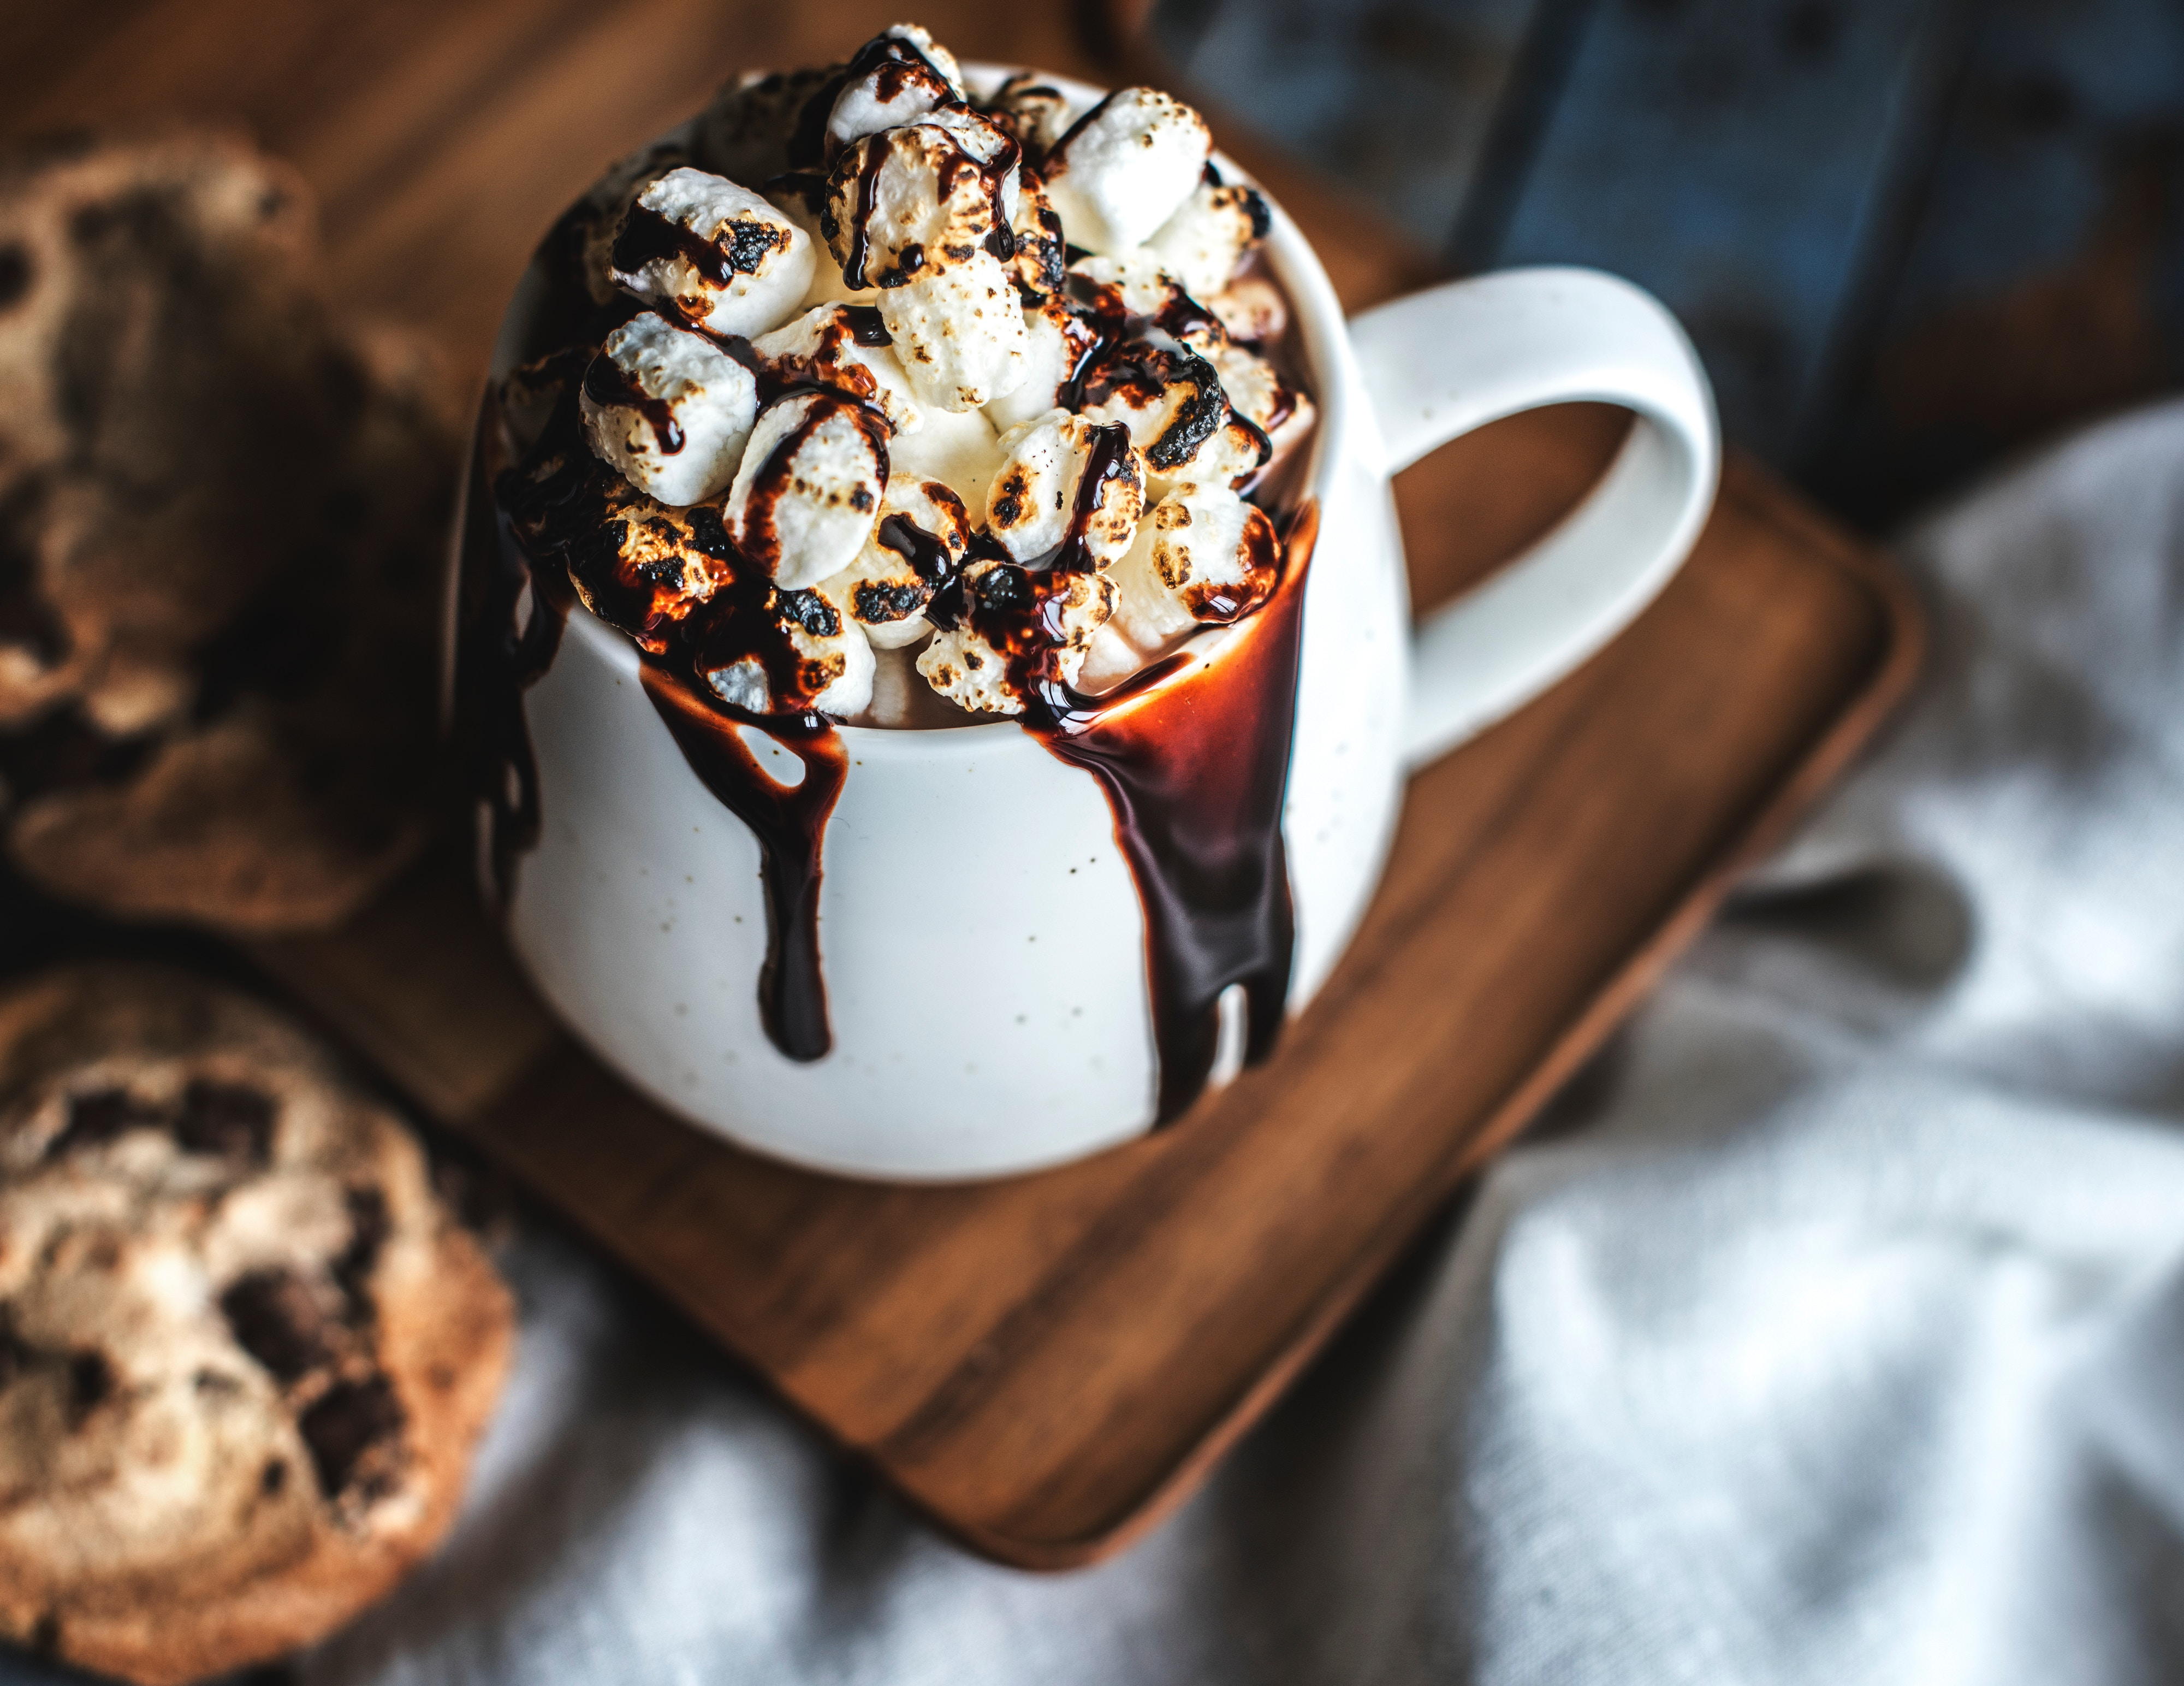 hot chocolate most unhealthy fast food